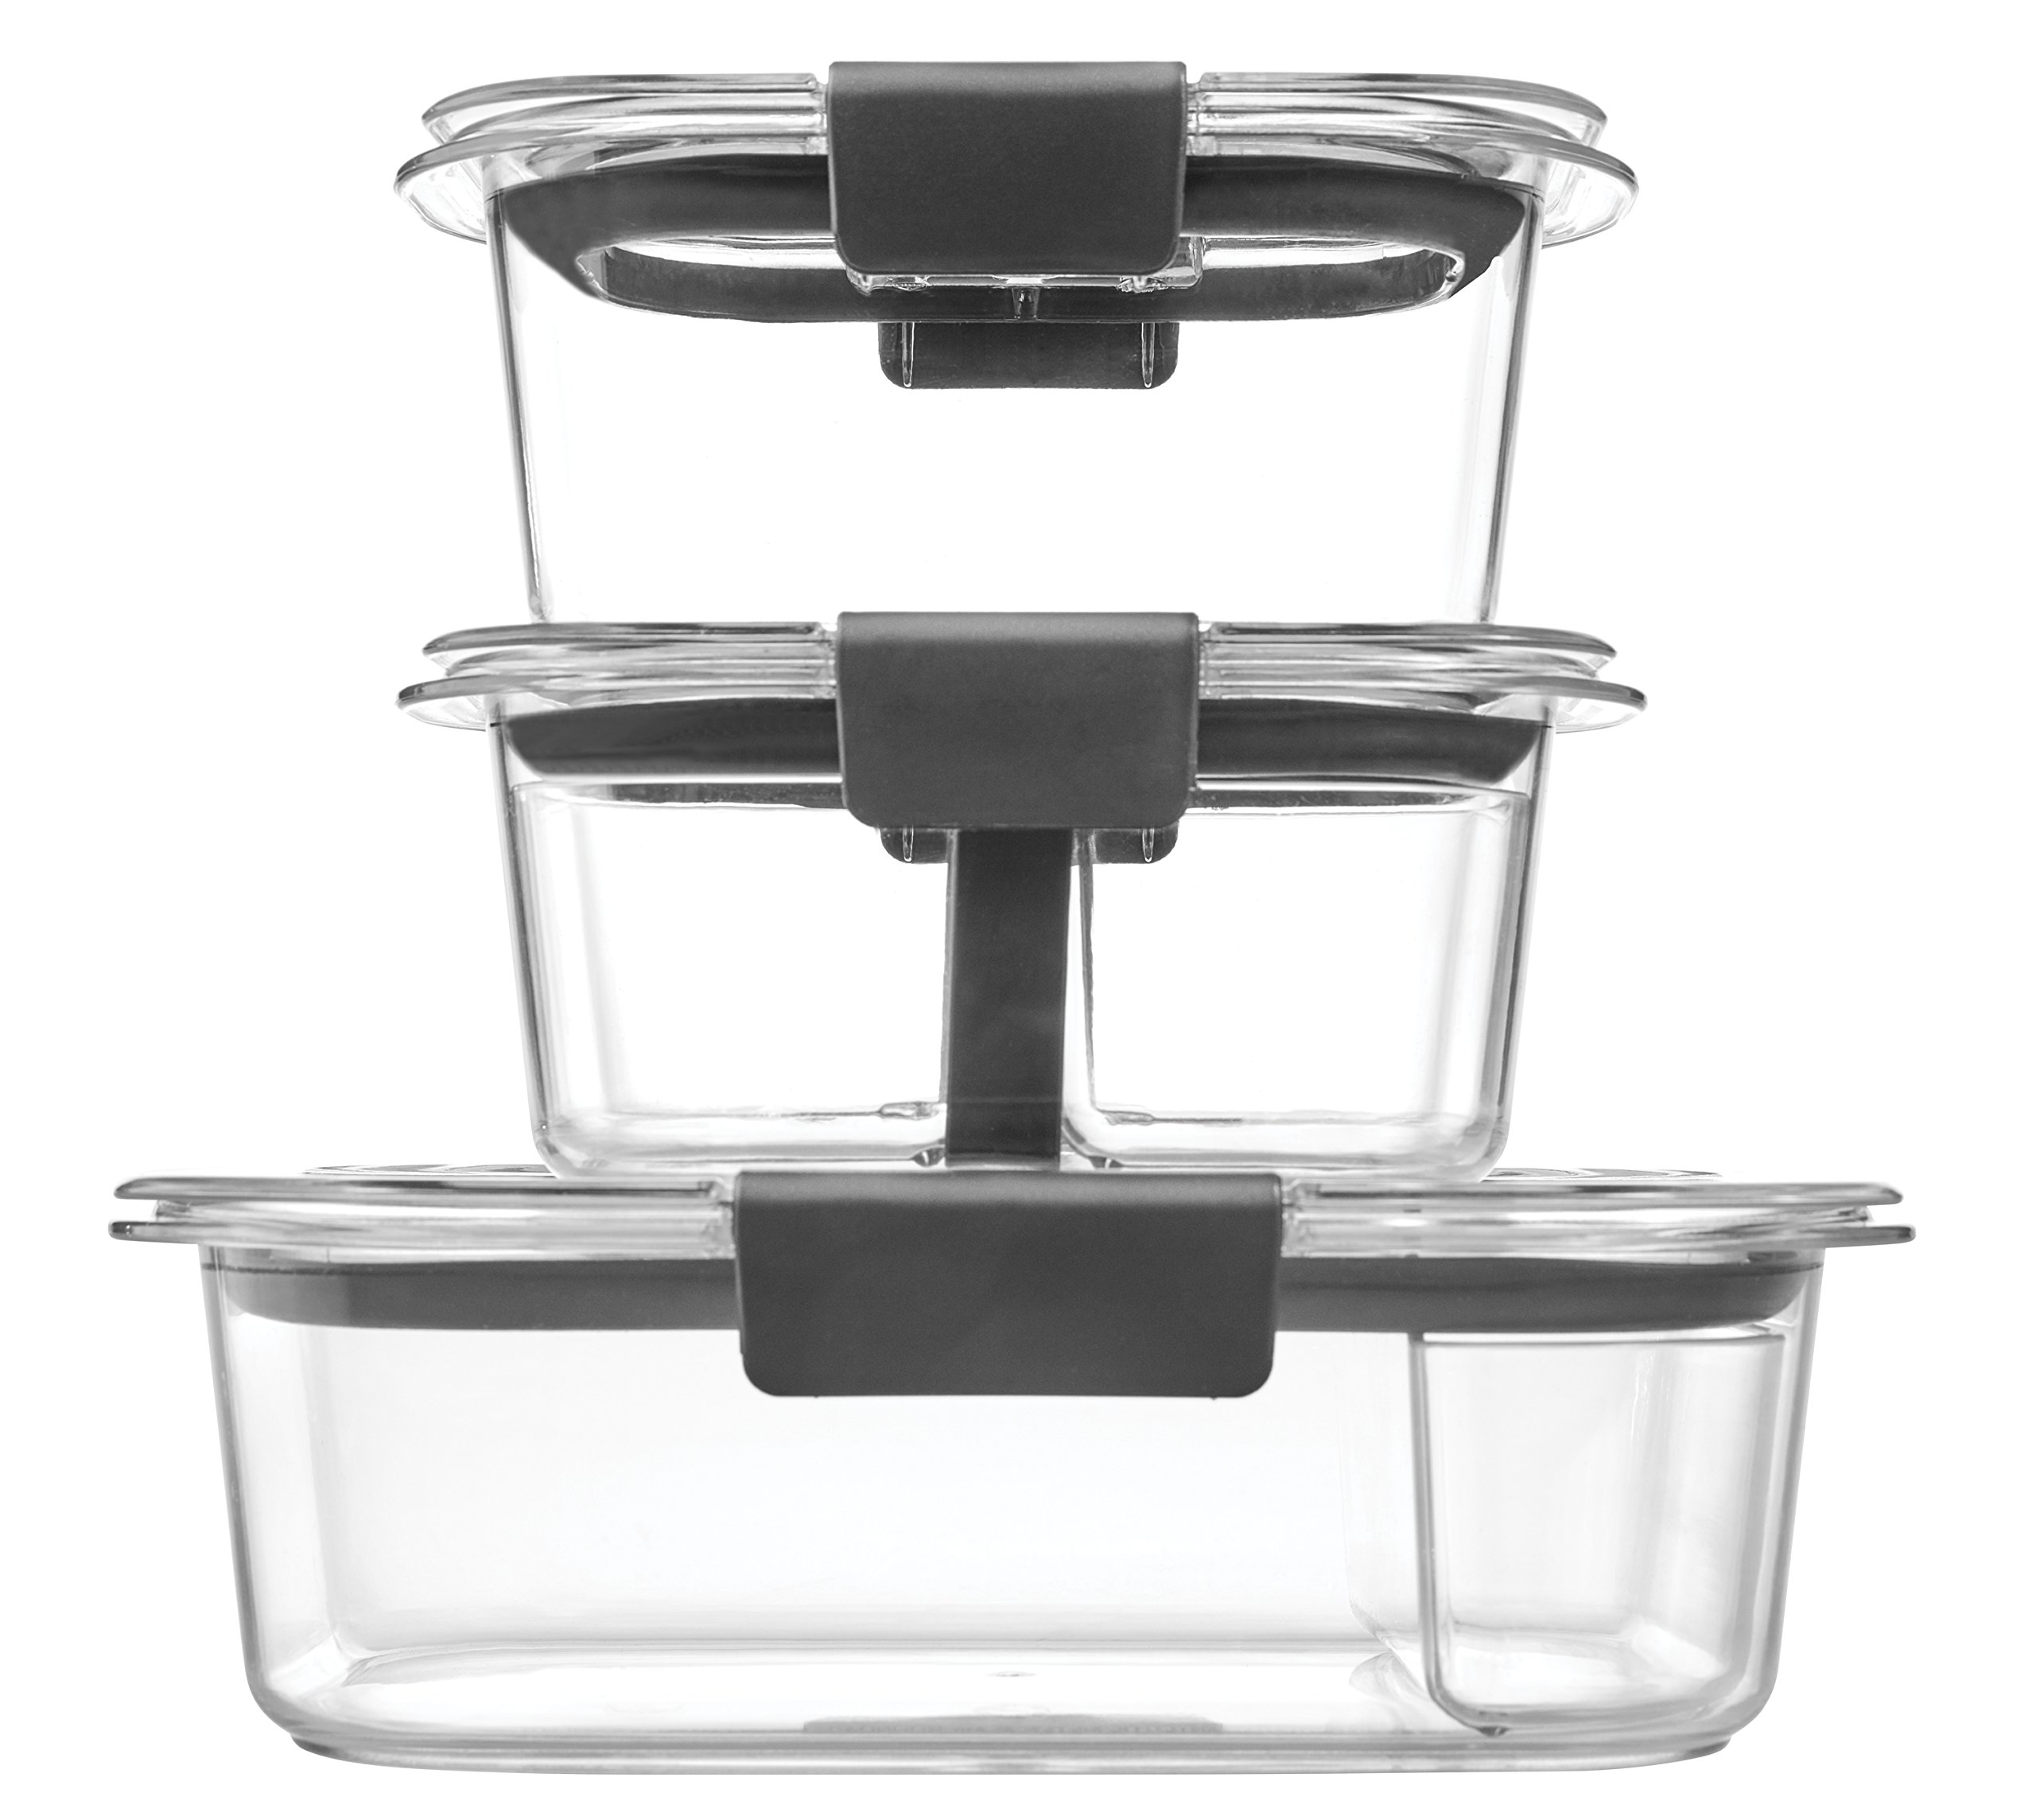 Rubbermaid Brilliance Food Storage Container, Sandwich and Snack Lunch Kit, Clear, 10-Piece Set 1997842 by Rubbermaid (Image #5)